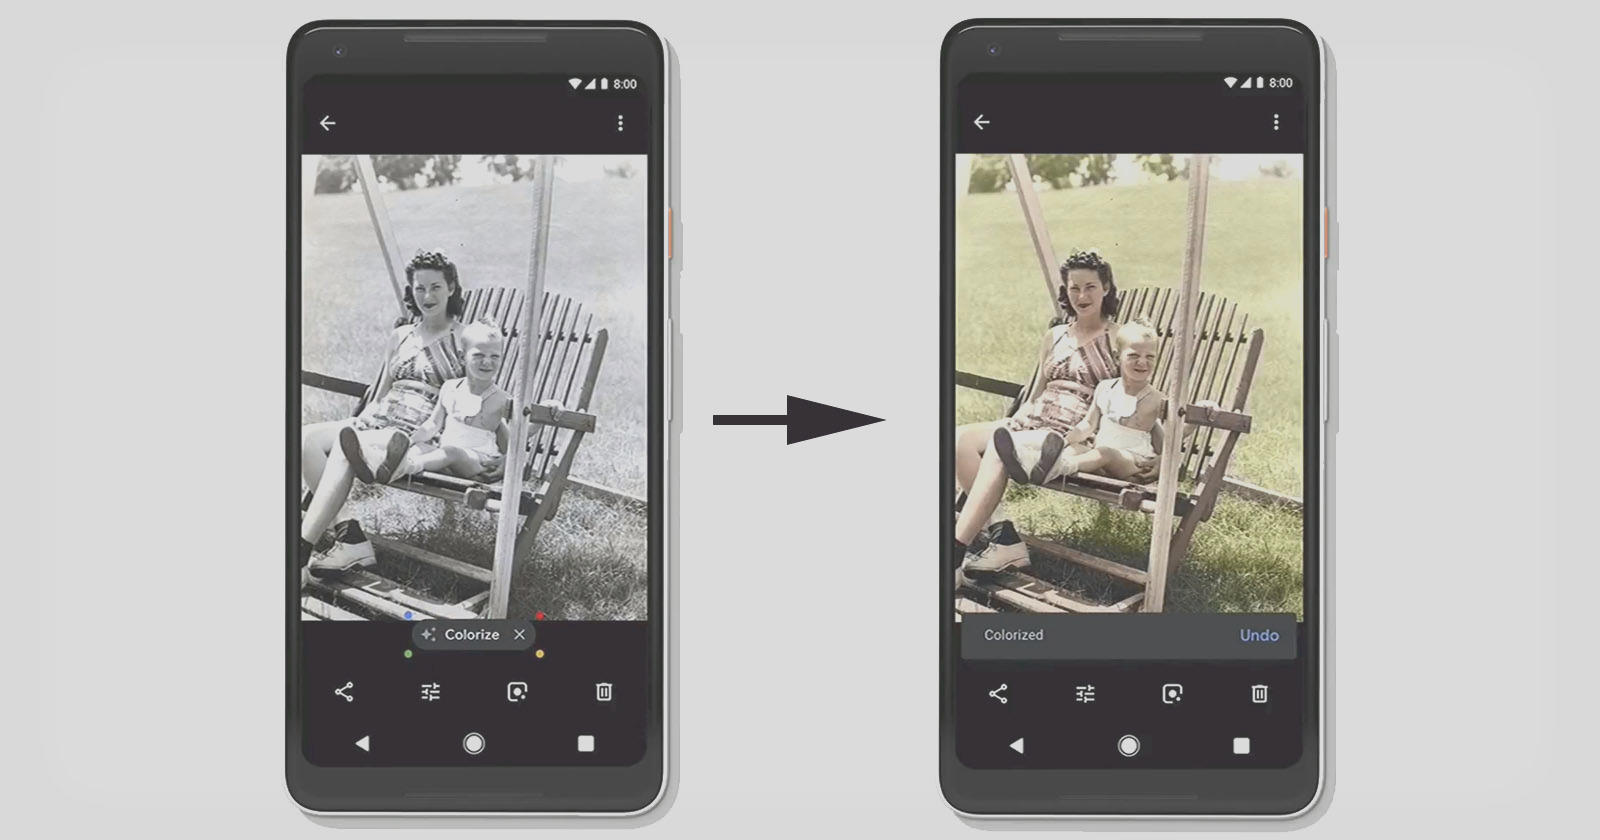 google photos to use ai to colorize black and white photos